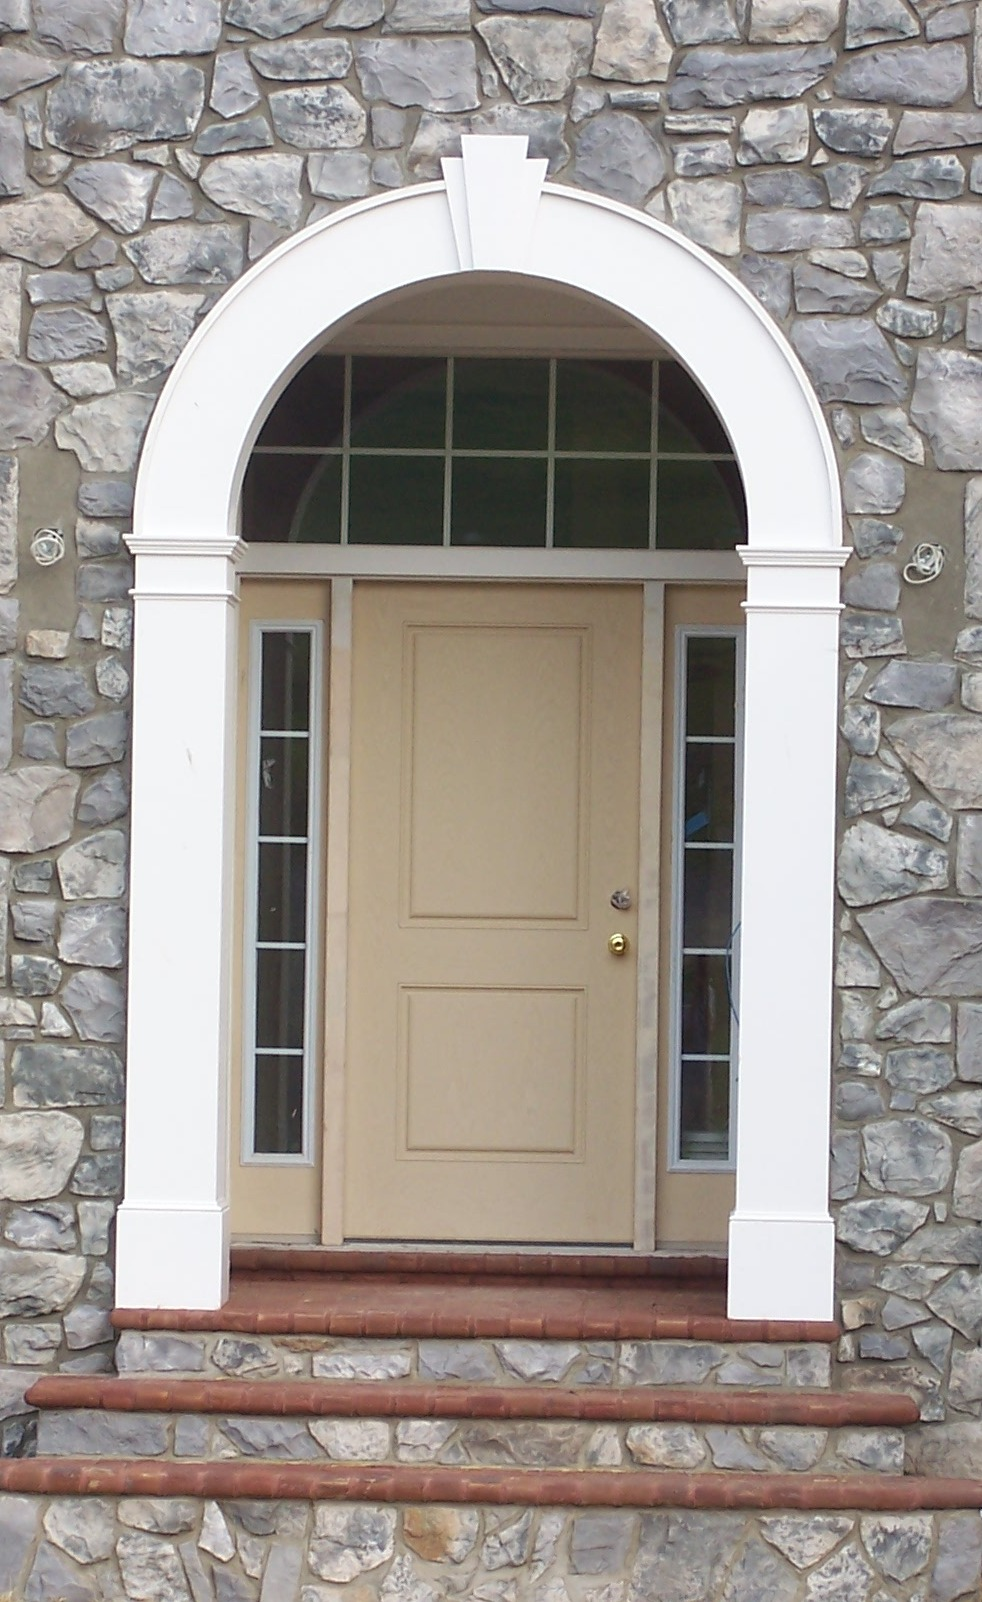 Fiberglass Exterior Doors For Home : Exterior doors fiberglass vs steel heartland home